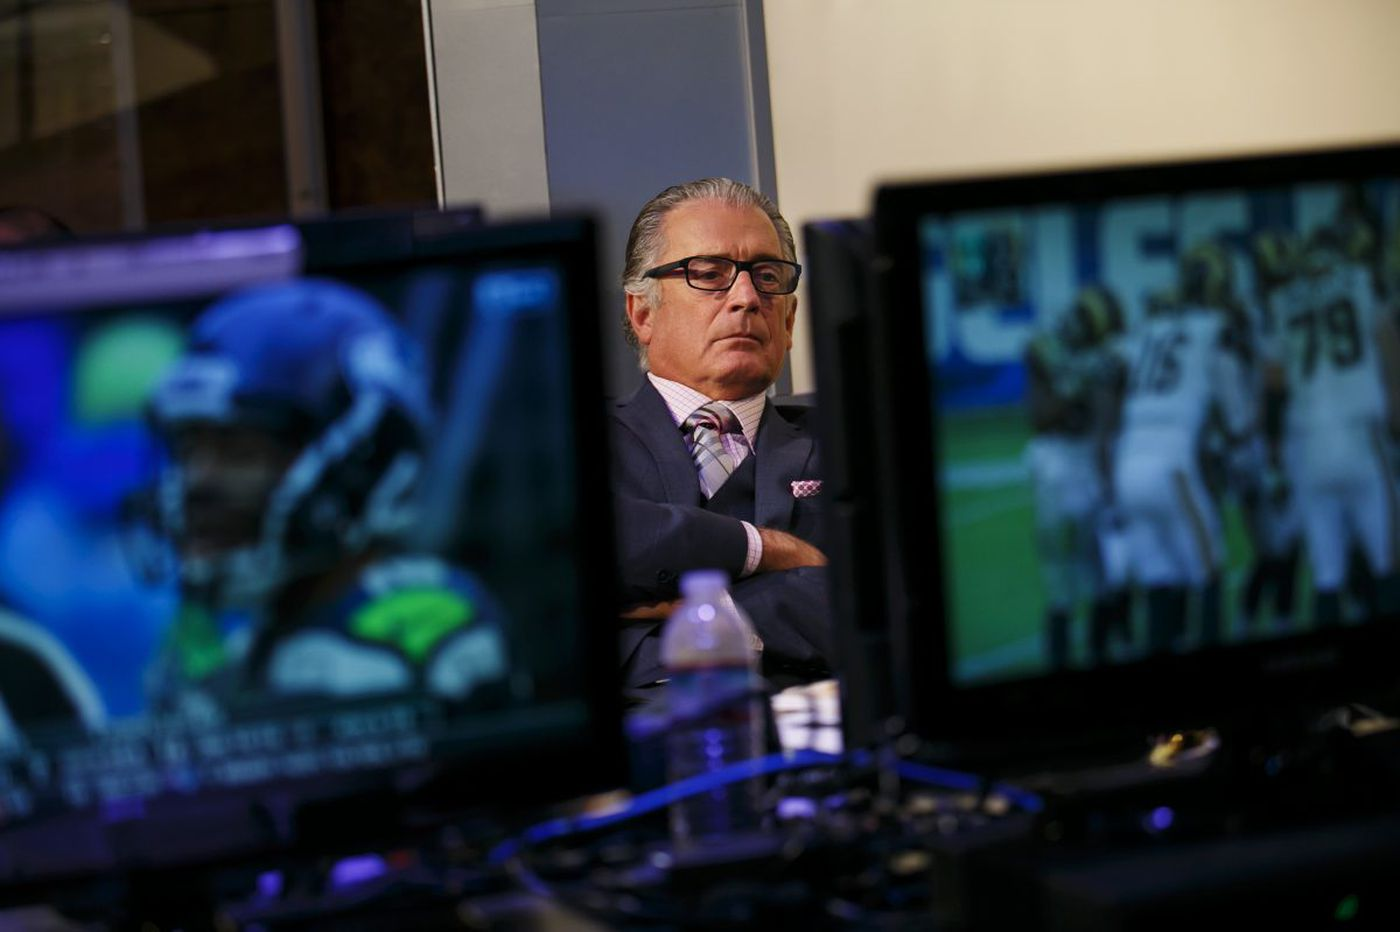 Philly Special should not have counted, Fox rules analyst Mike Pereira says